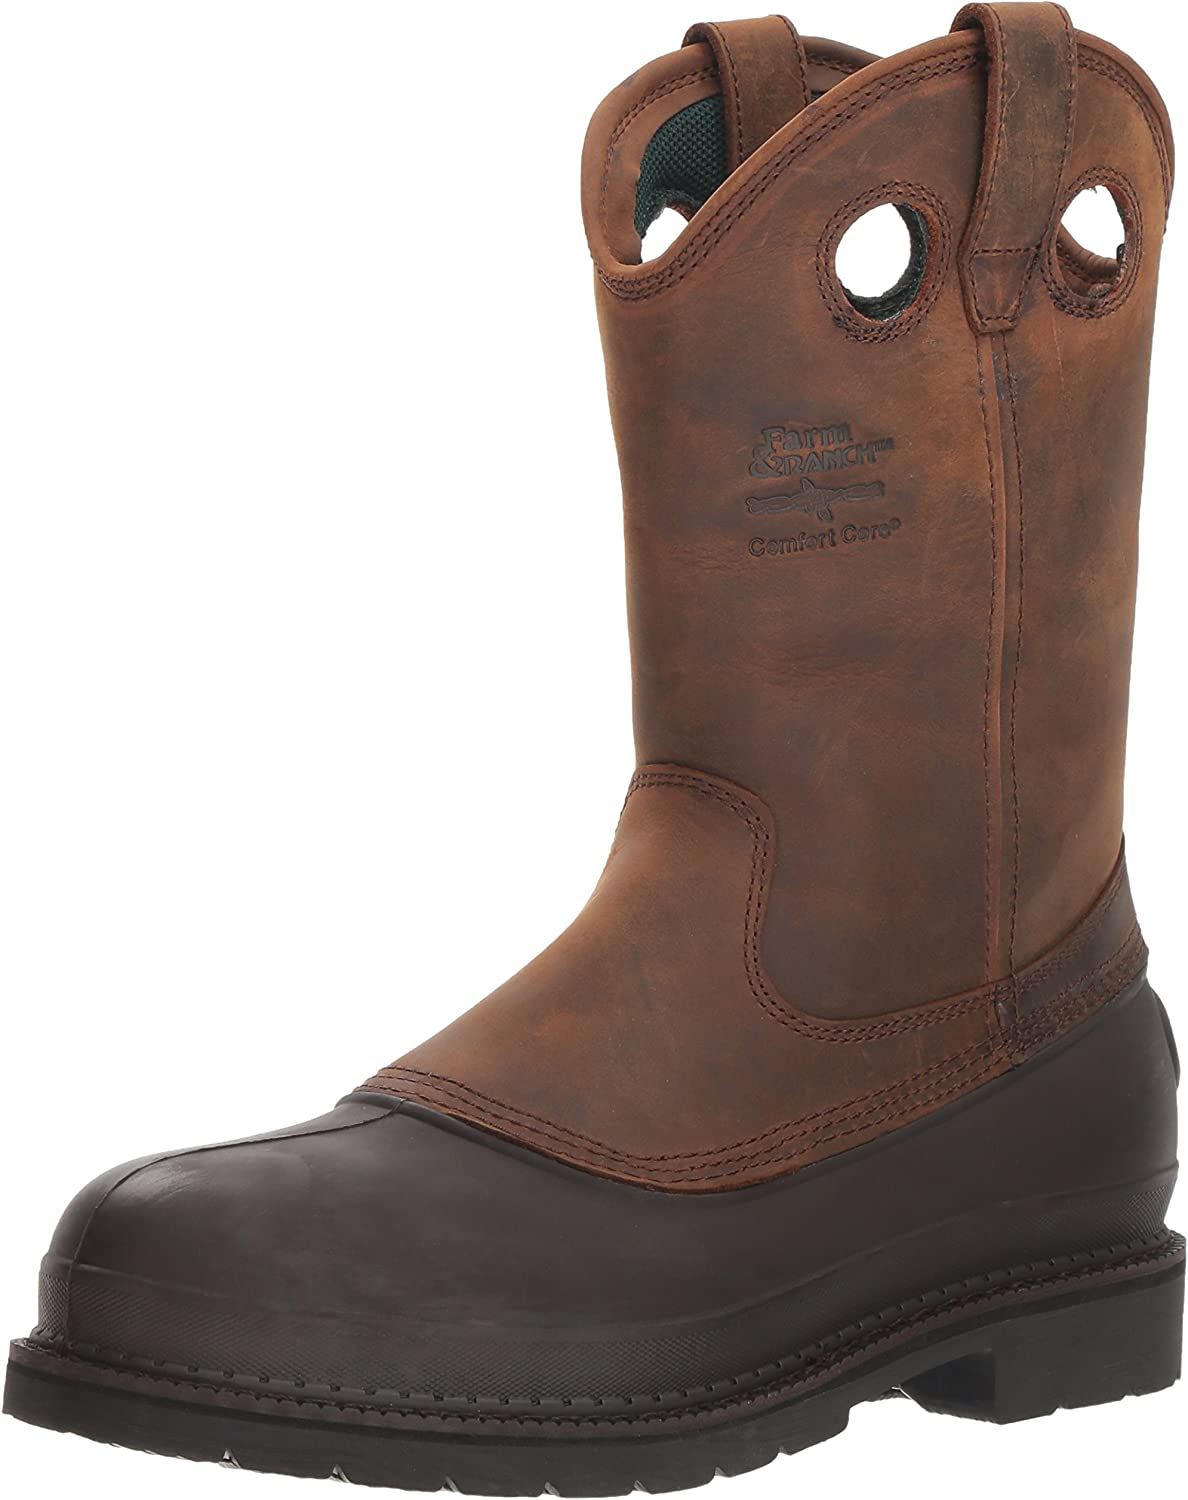 Georgia Boot Muddog Wellington Work Boot, Brown - 11.5 2E US